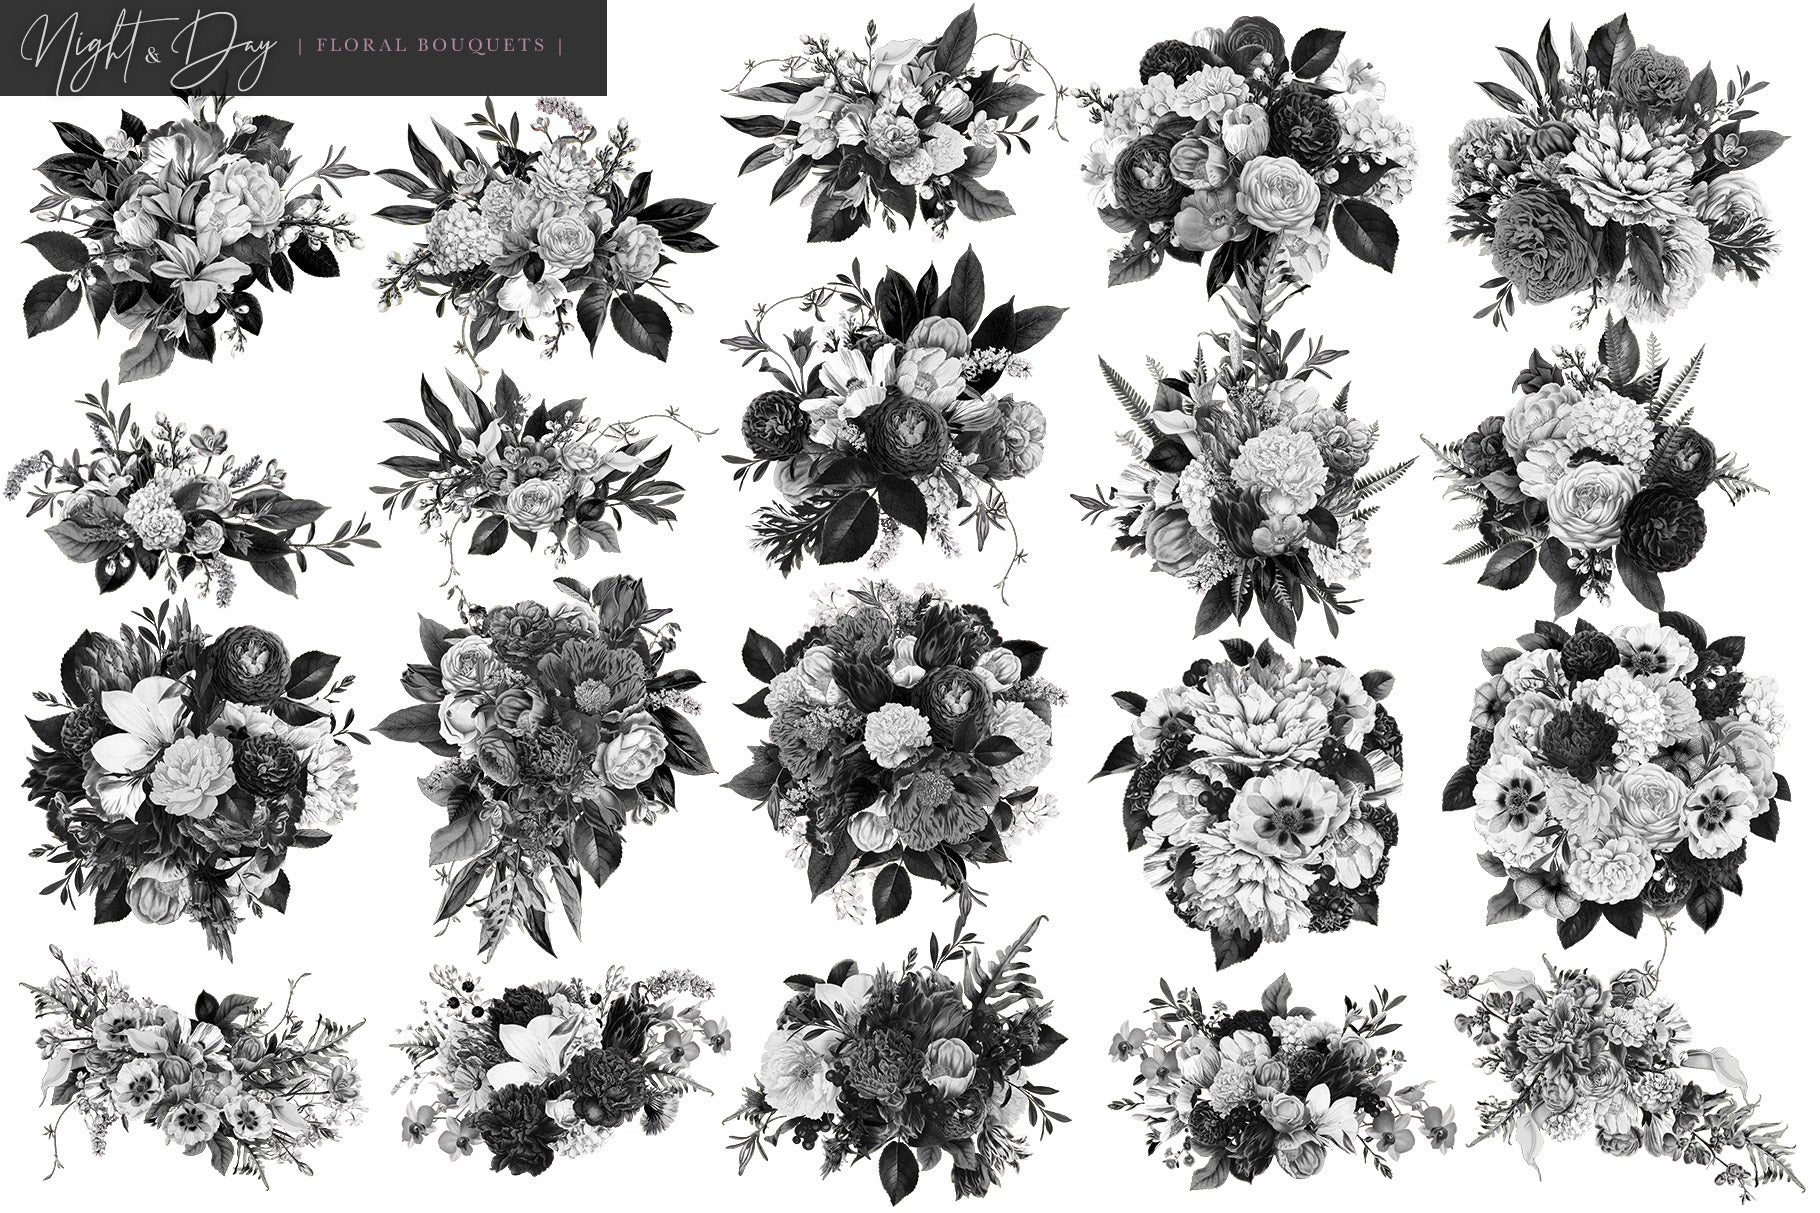 Night and day floral bouquet graphics avalon rose design night and day floral bouquet graphics mightylinksfo